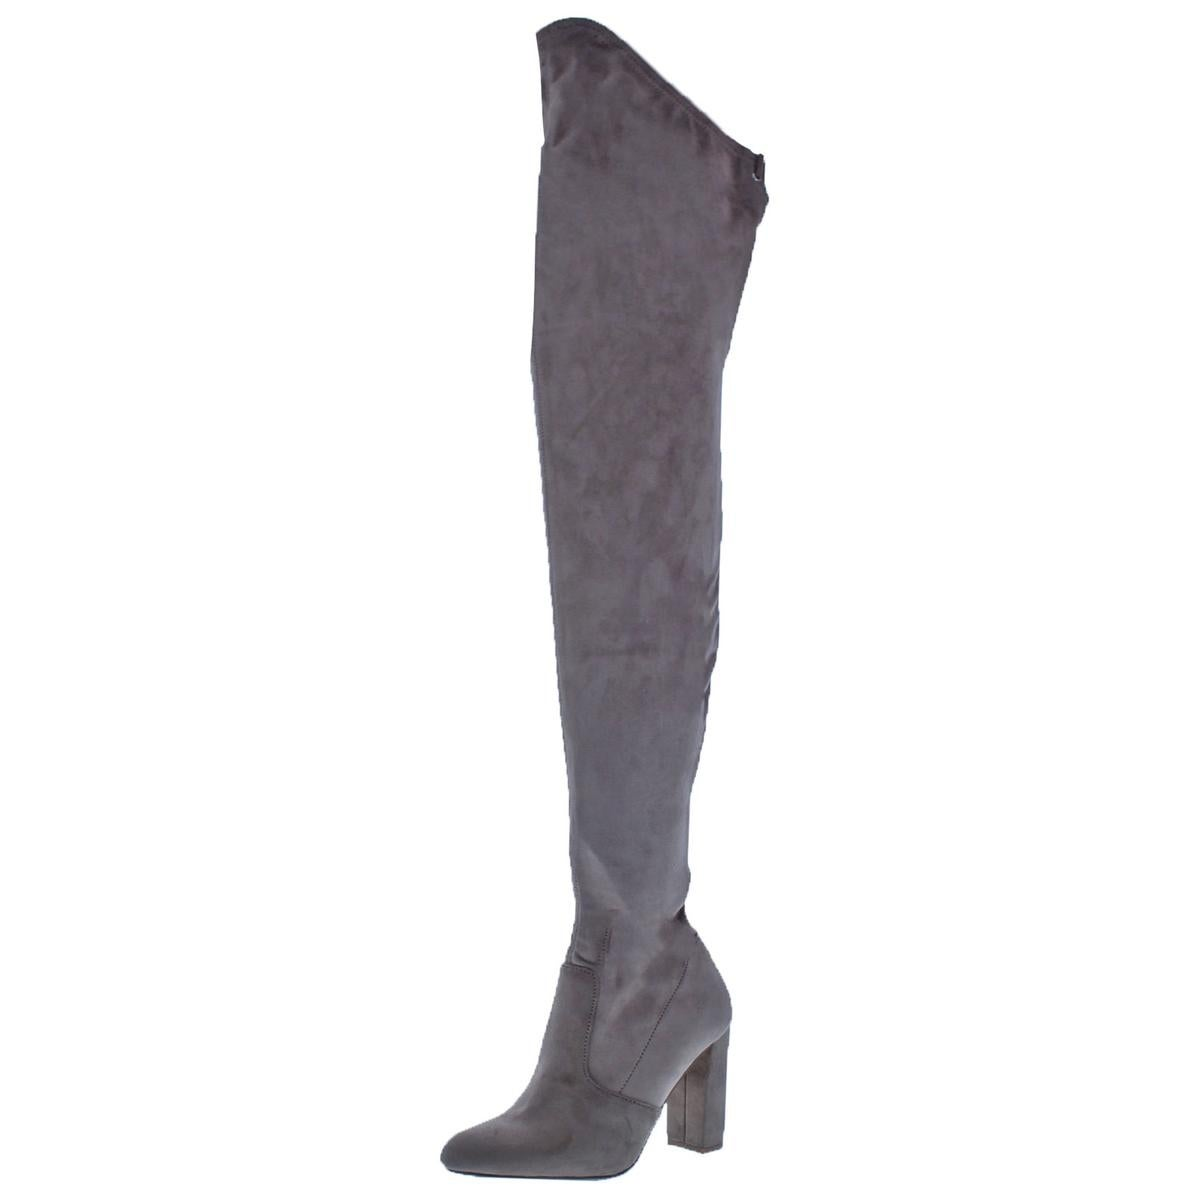 7c57b52f76c Shop Steve Madden Womens Elektric Thigh-High Boots Faux Suede Tall ...